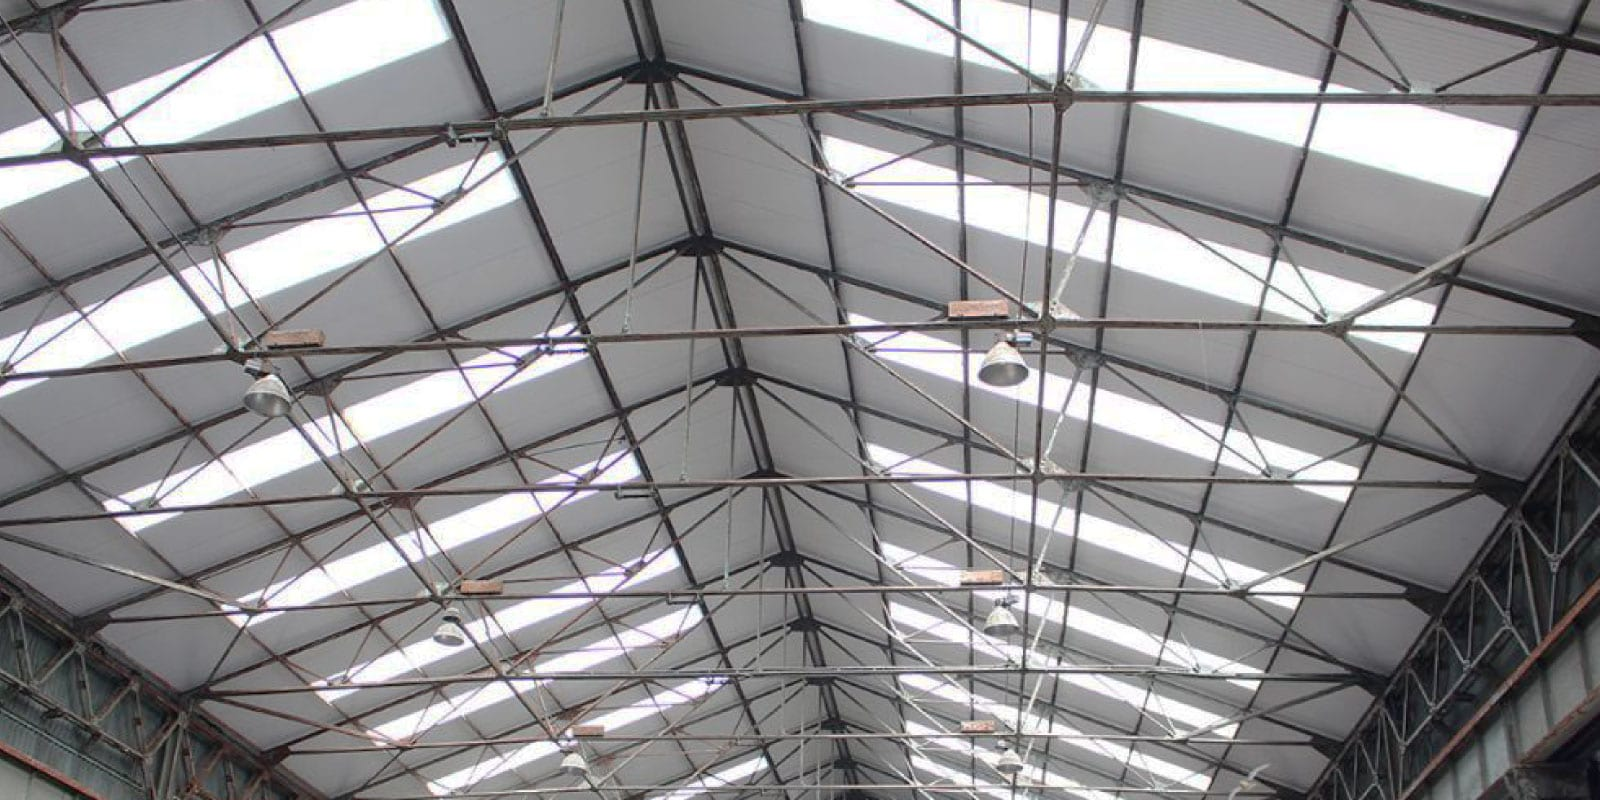 Cool-lite GC Premium Industrial Grade Heat Reduction Roof Sheeting 1